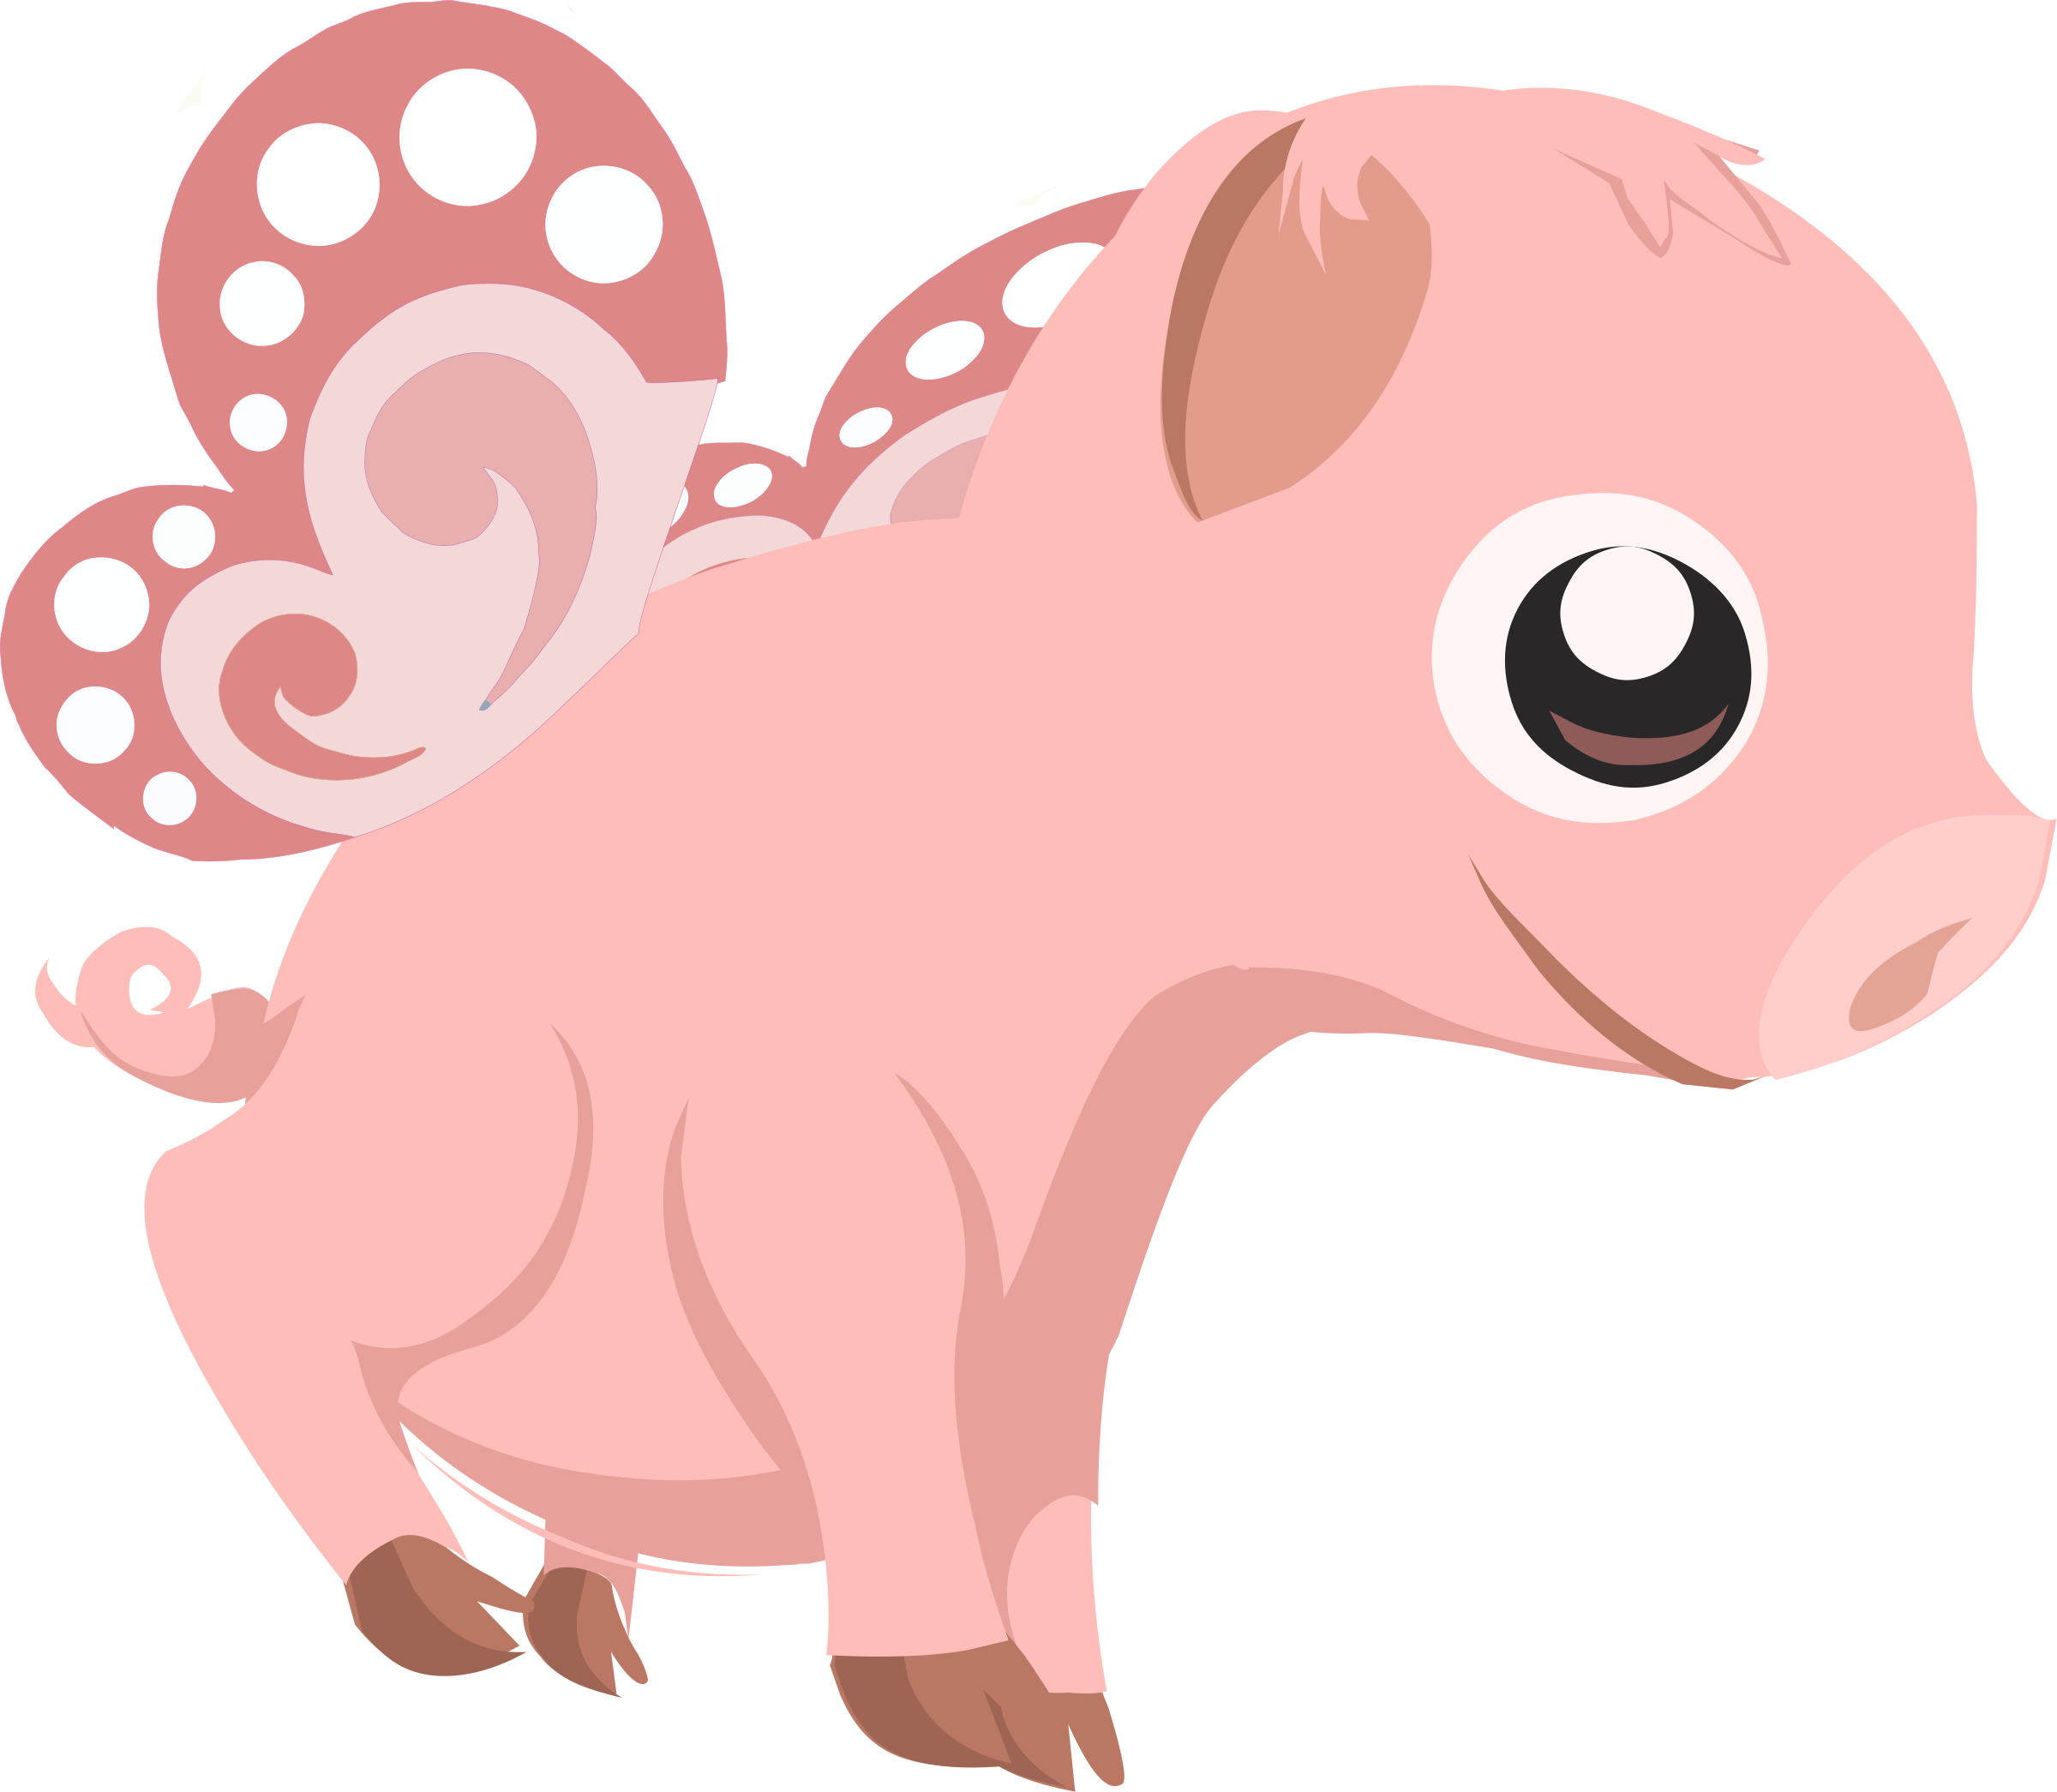 Flying piglet by anarres